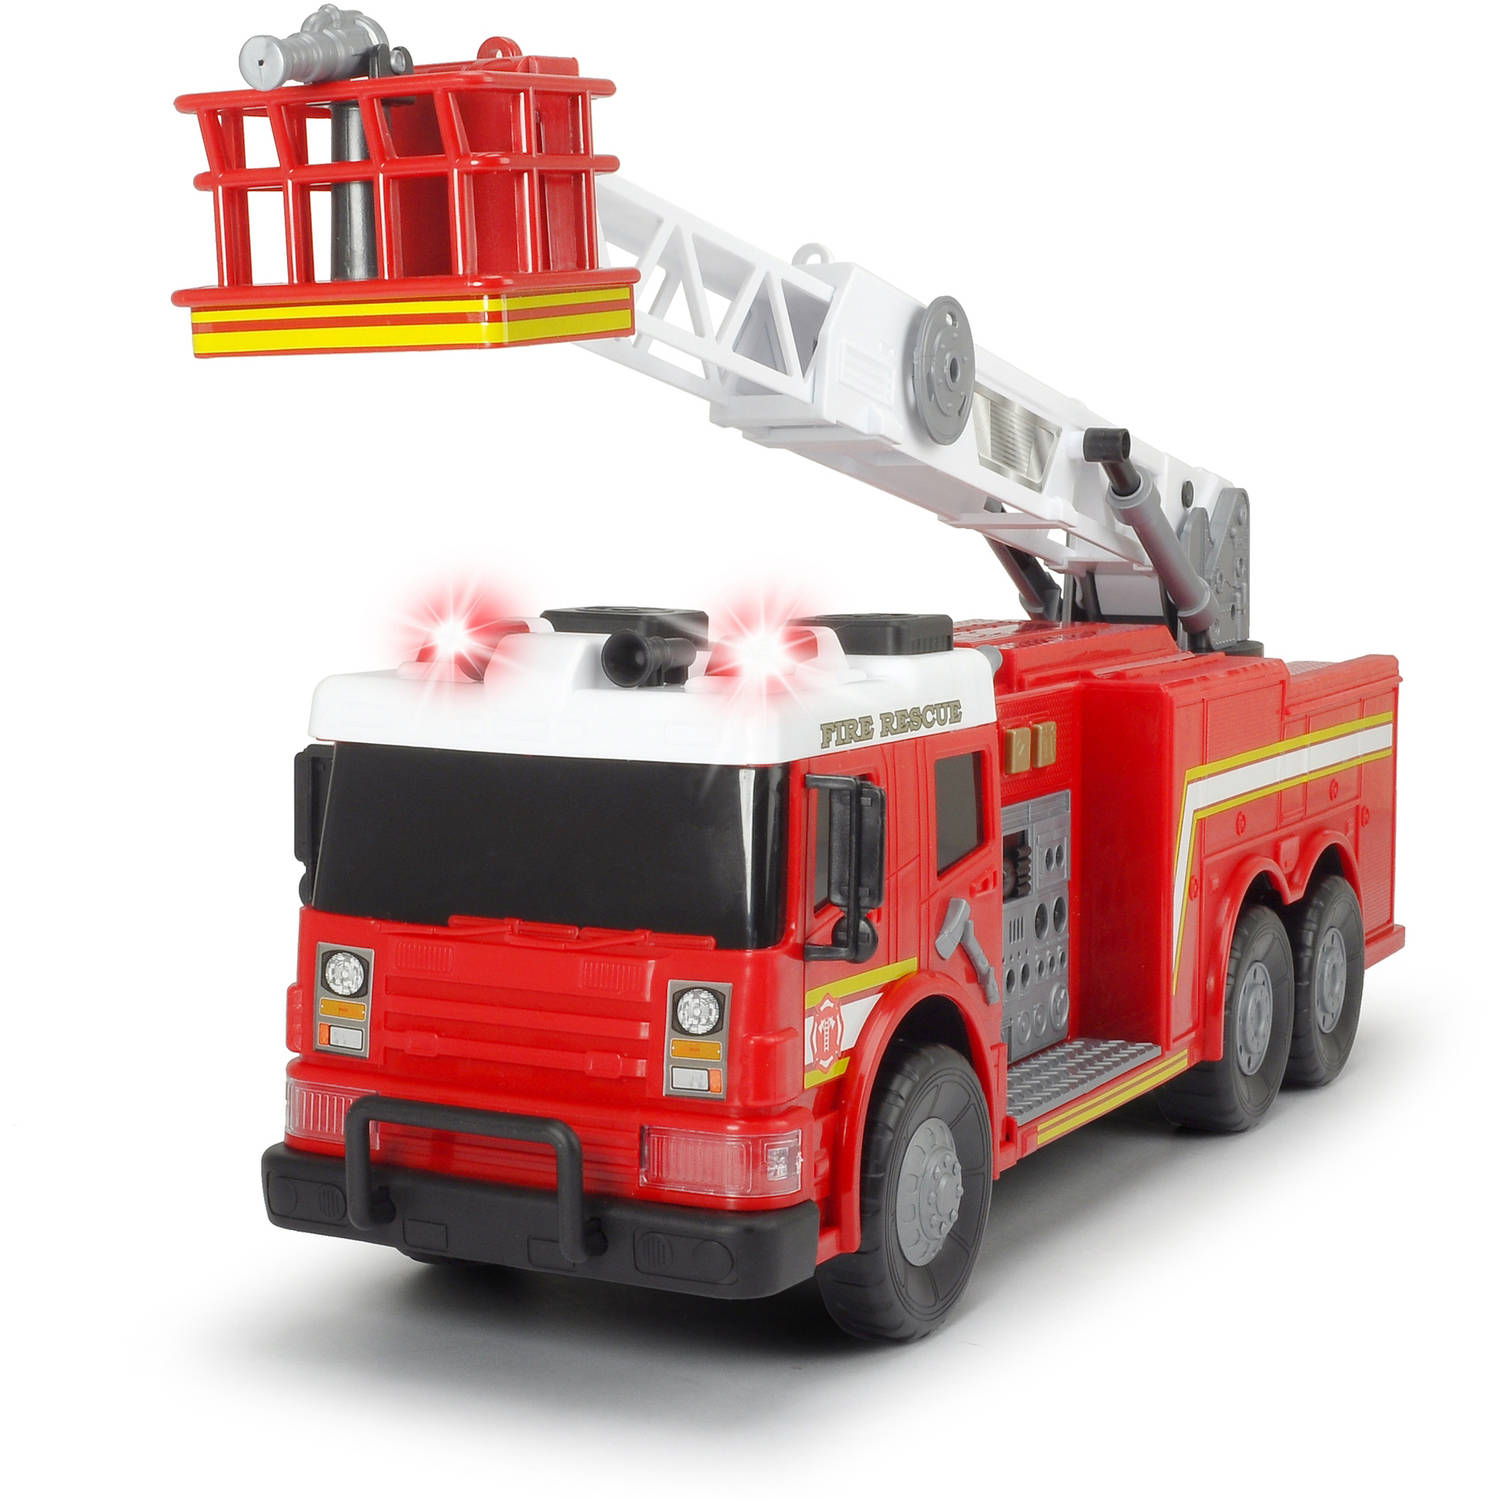 Adventure Force Mighty Truck Fire Truck by Simba Dickie